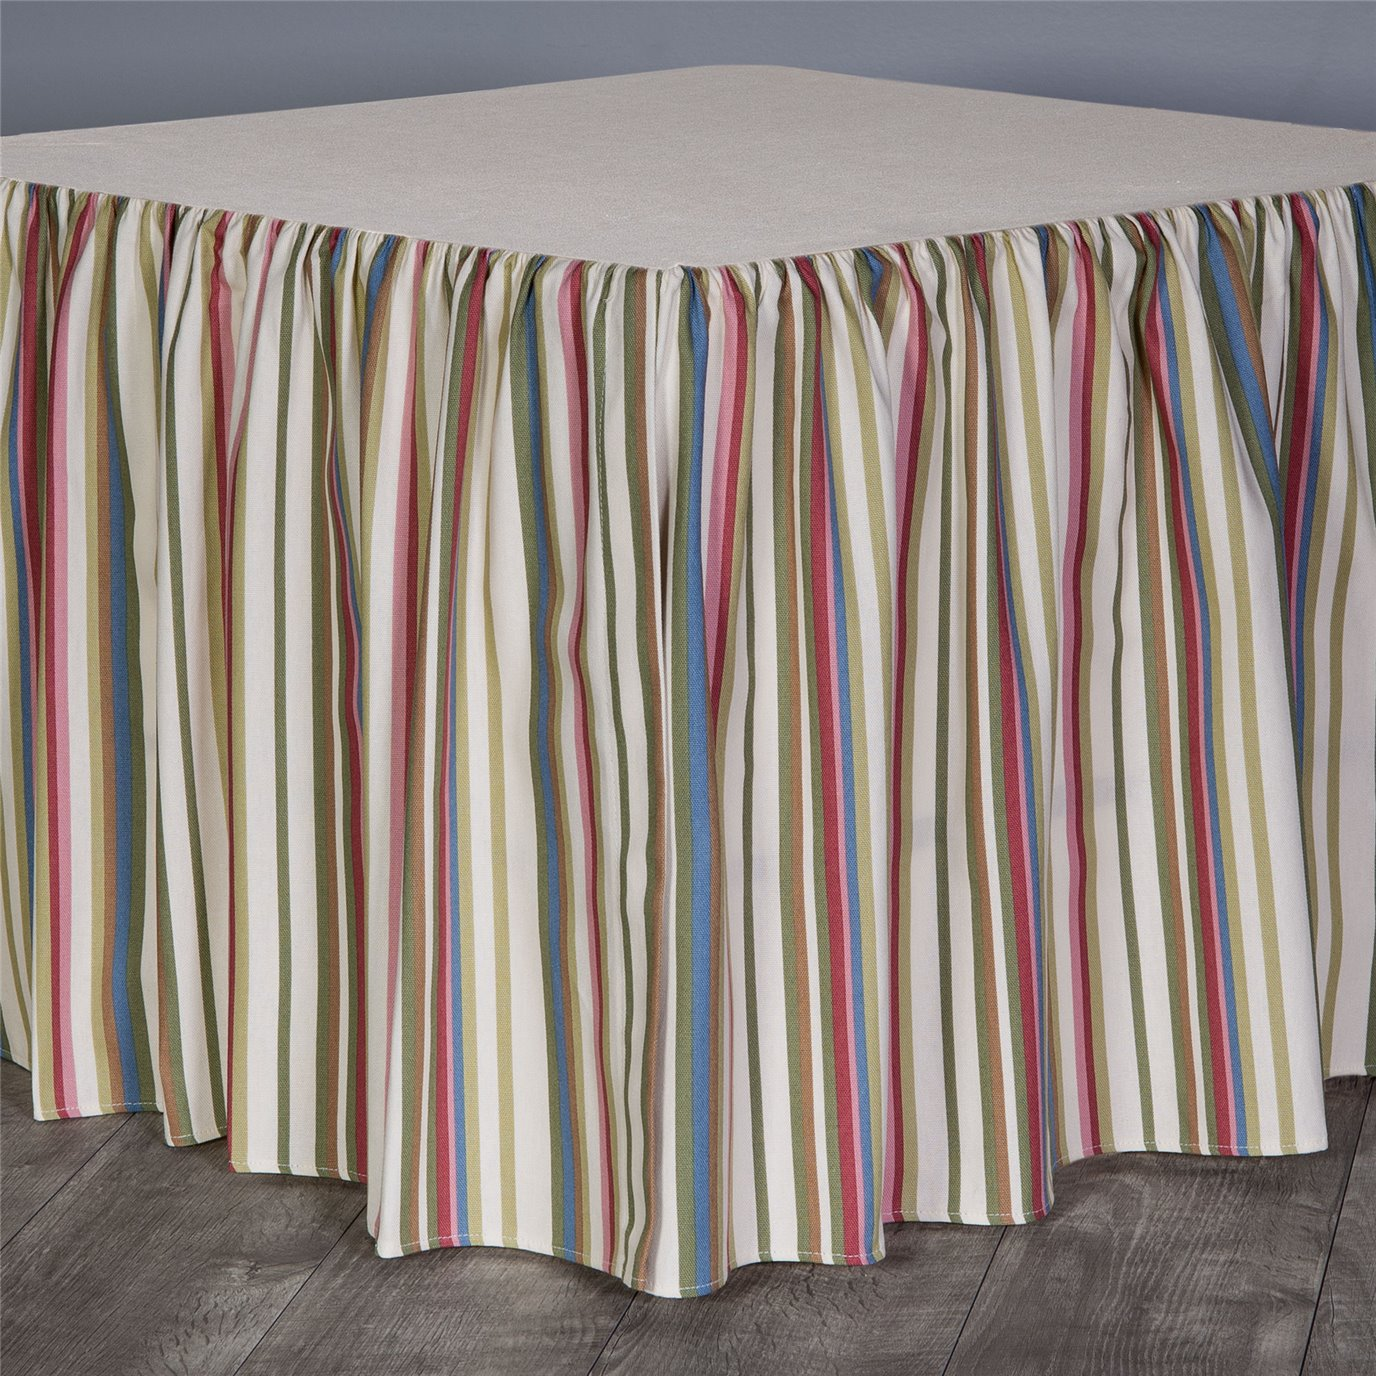 "Hillhouse Stripe Full 15"" Bed skirt"